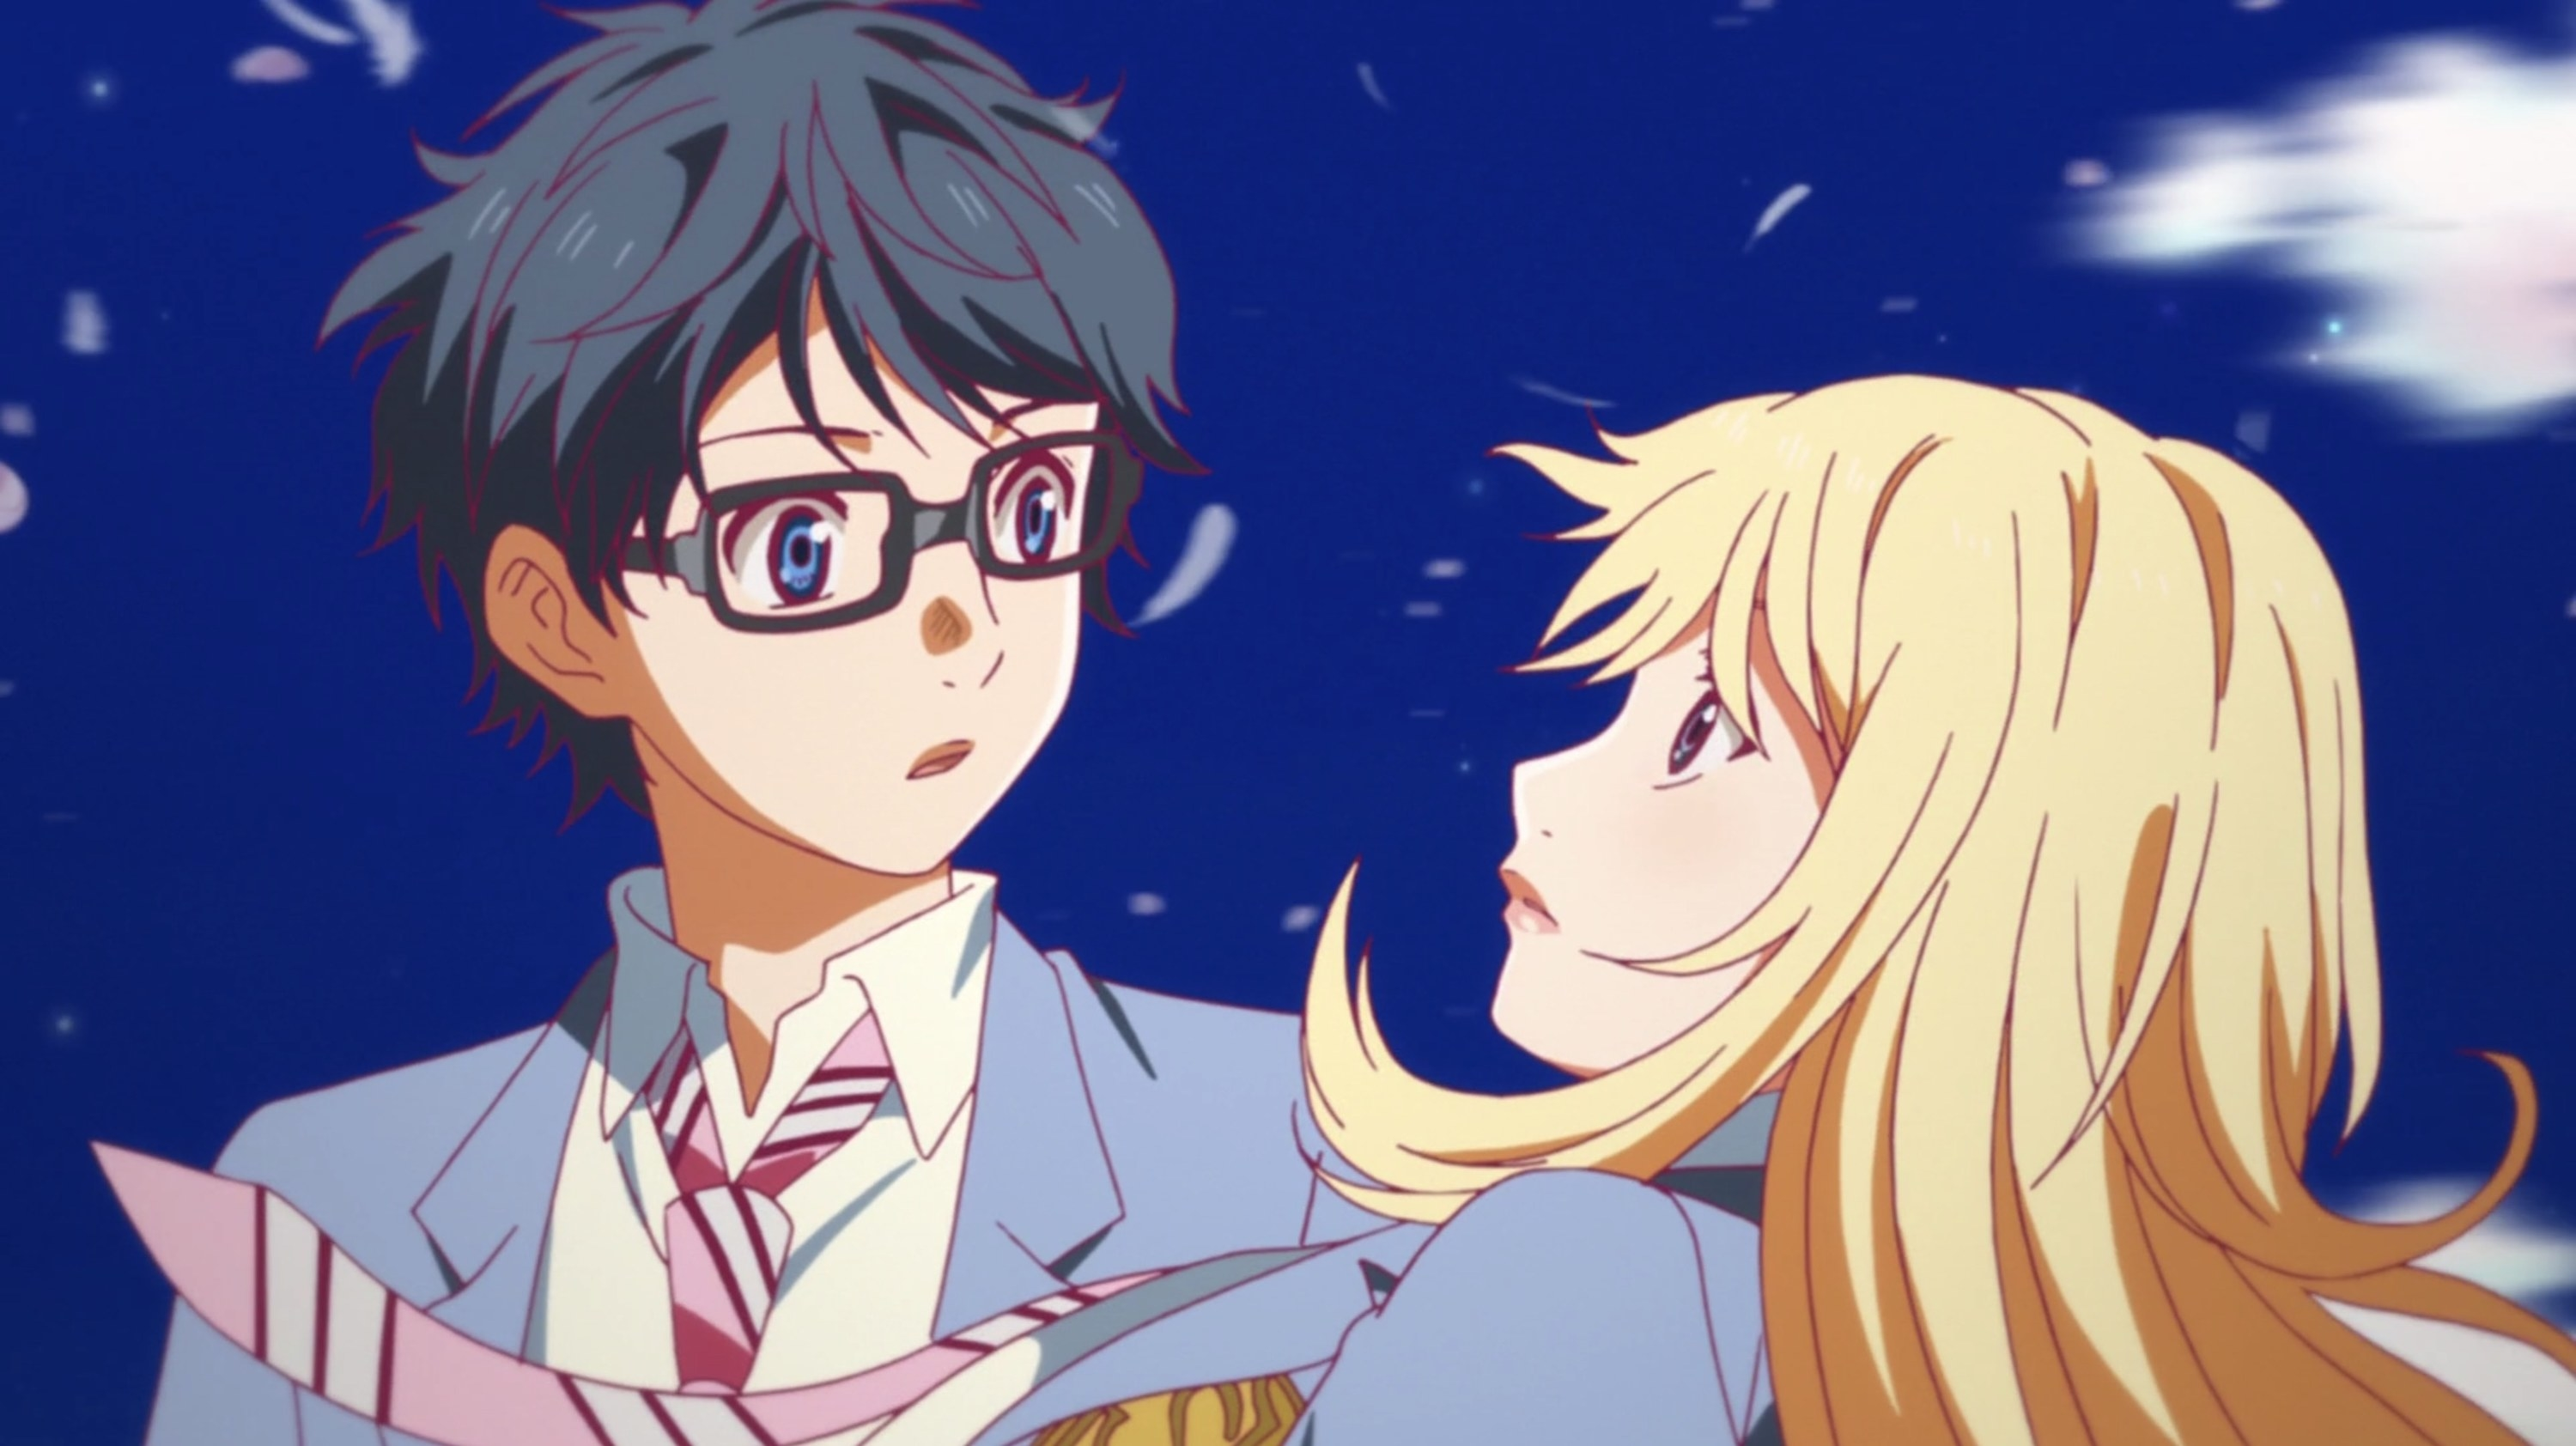 Kousei and Kaori looking into each other's eyes